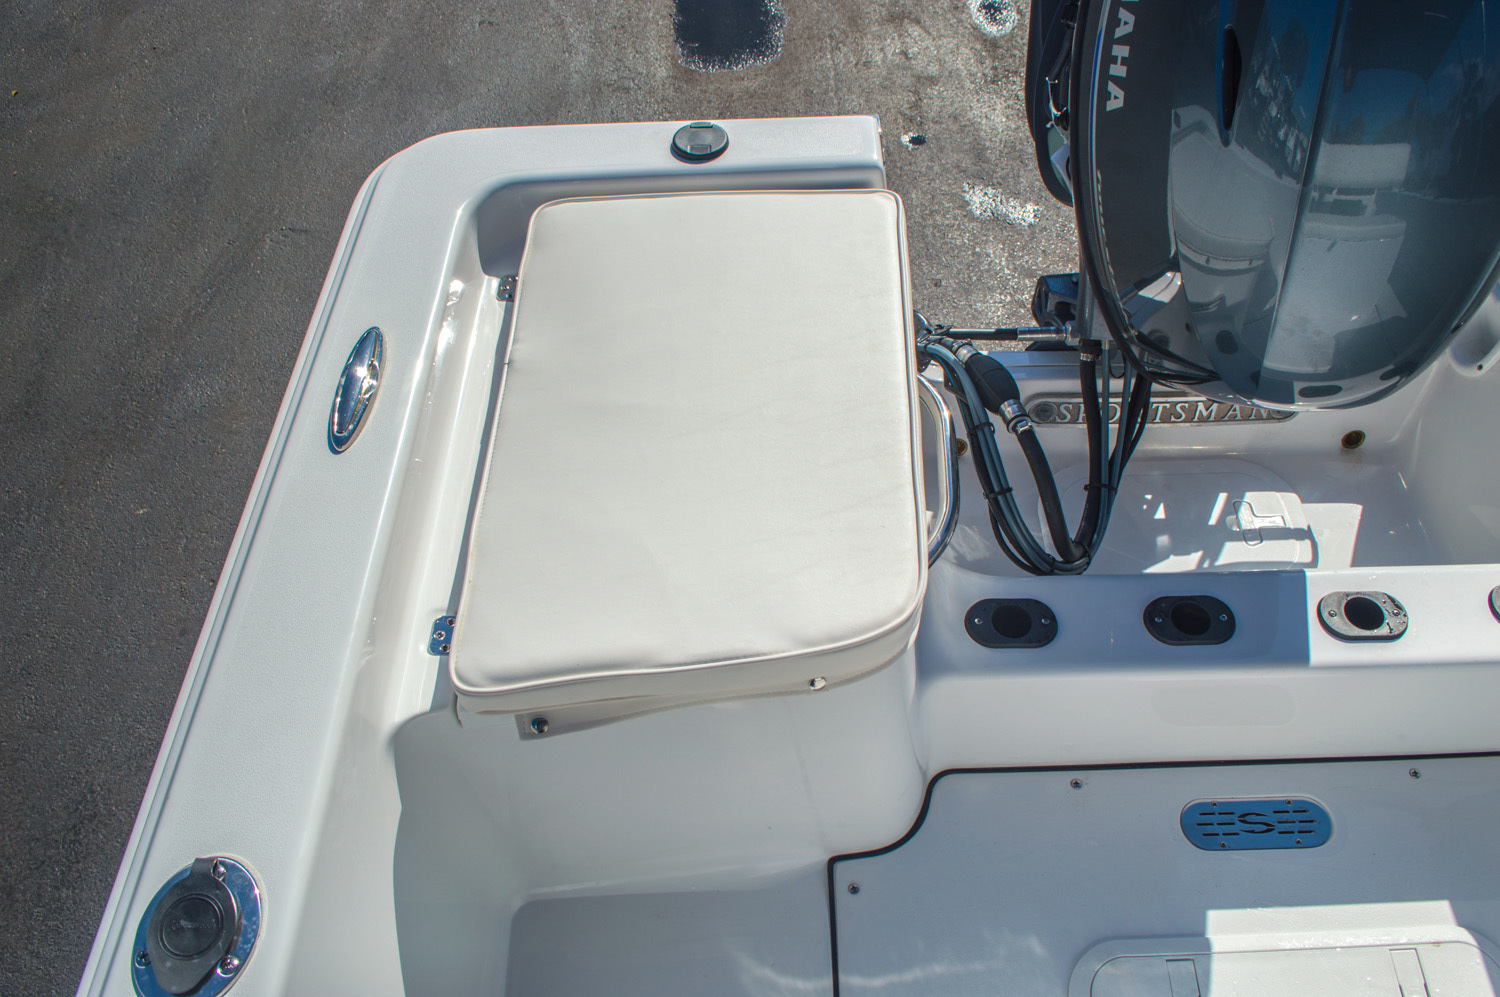 Thumbnail 13 for New 2016 Sportsman 17 Island Reef boat for sale in West Palm Beach, FL